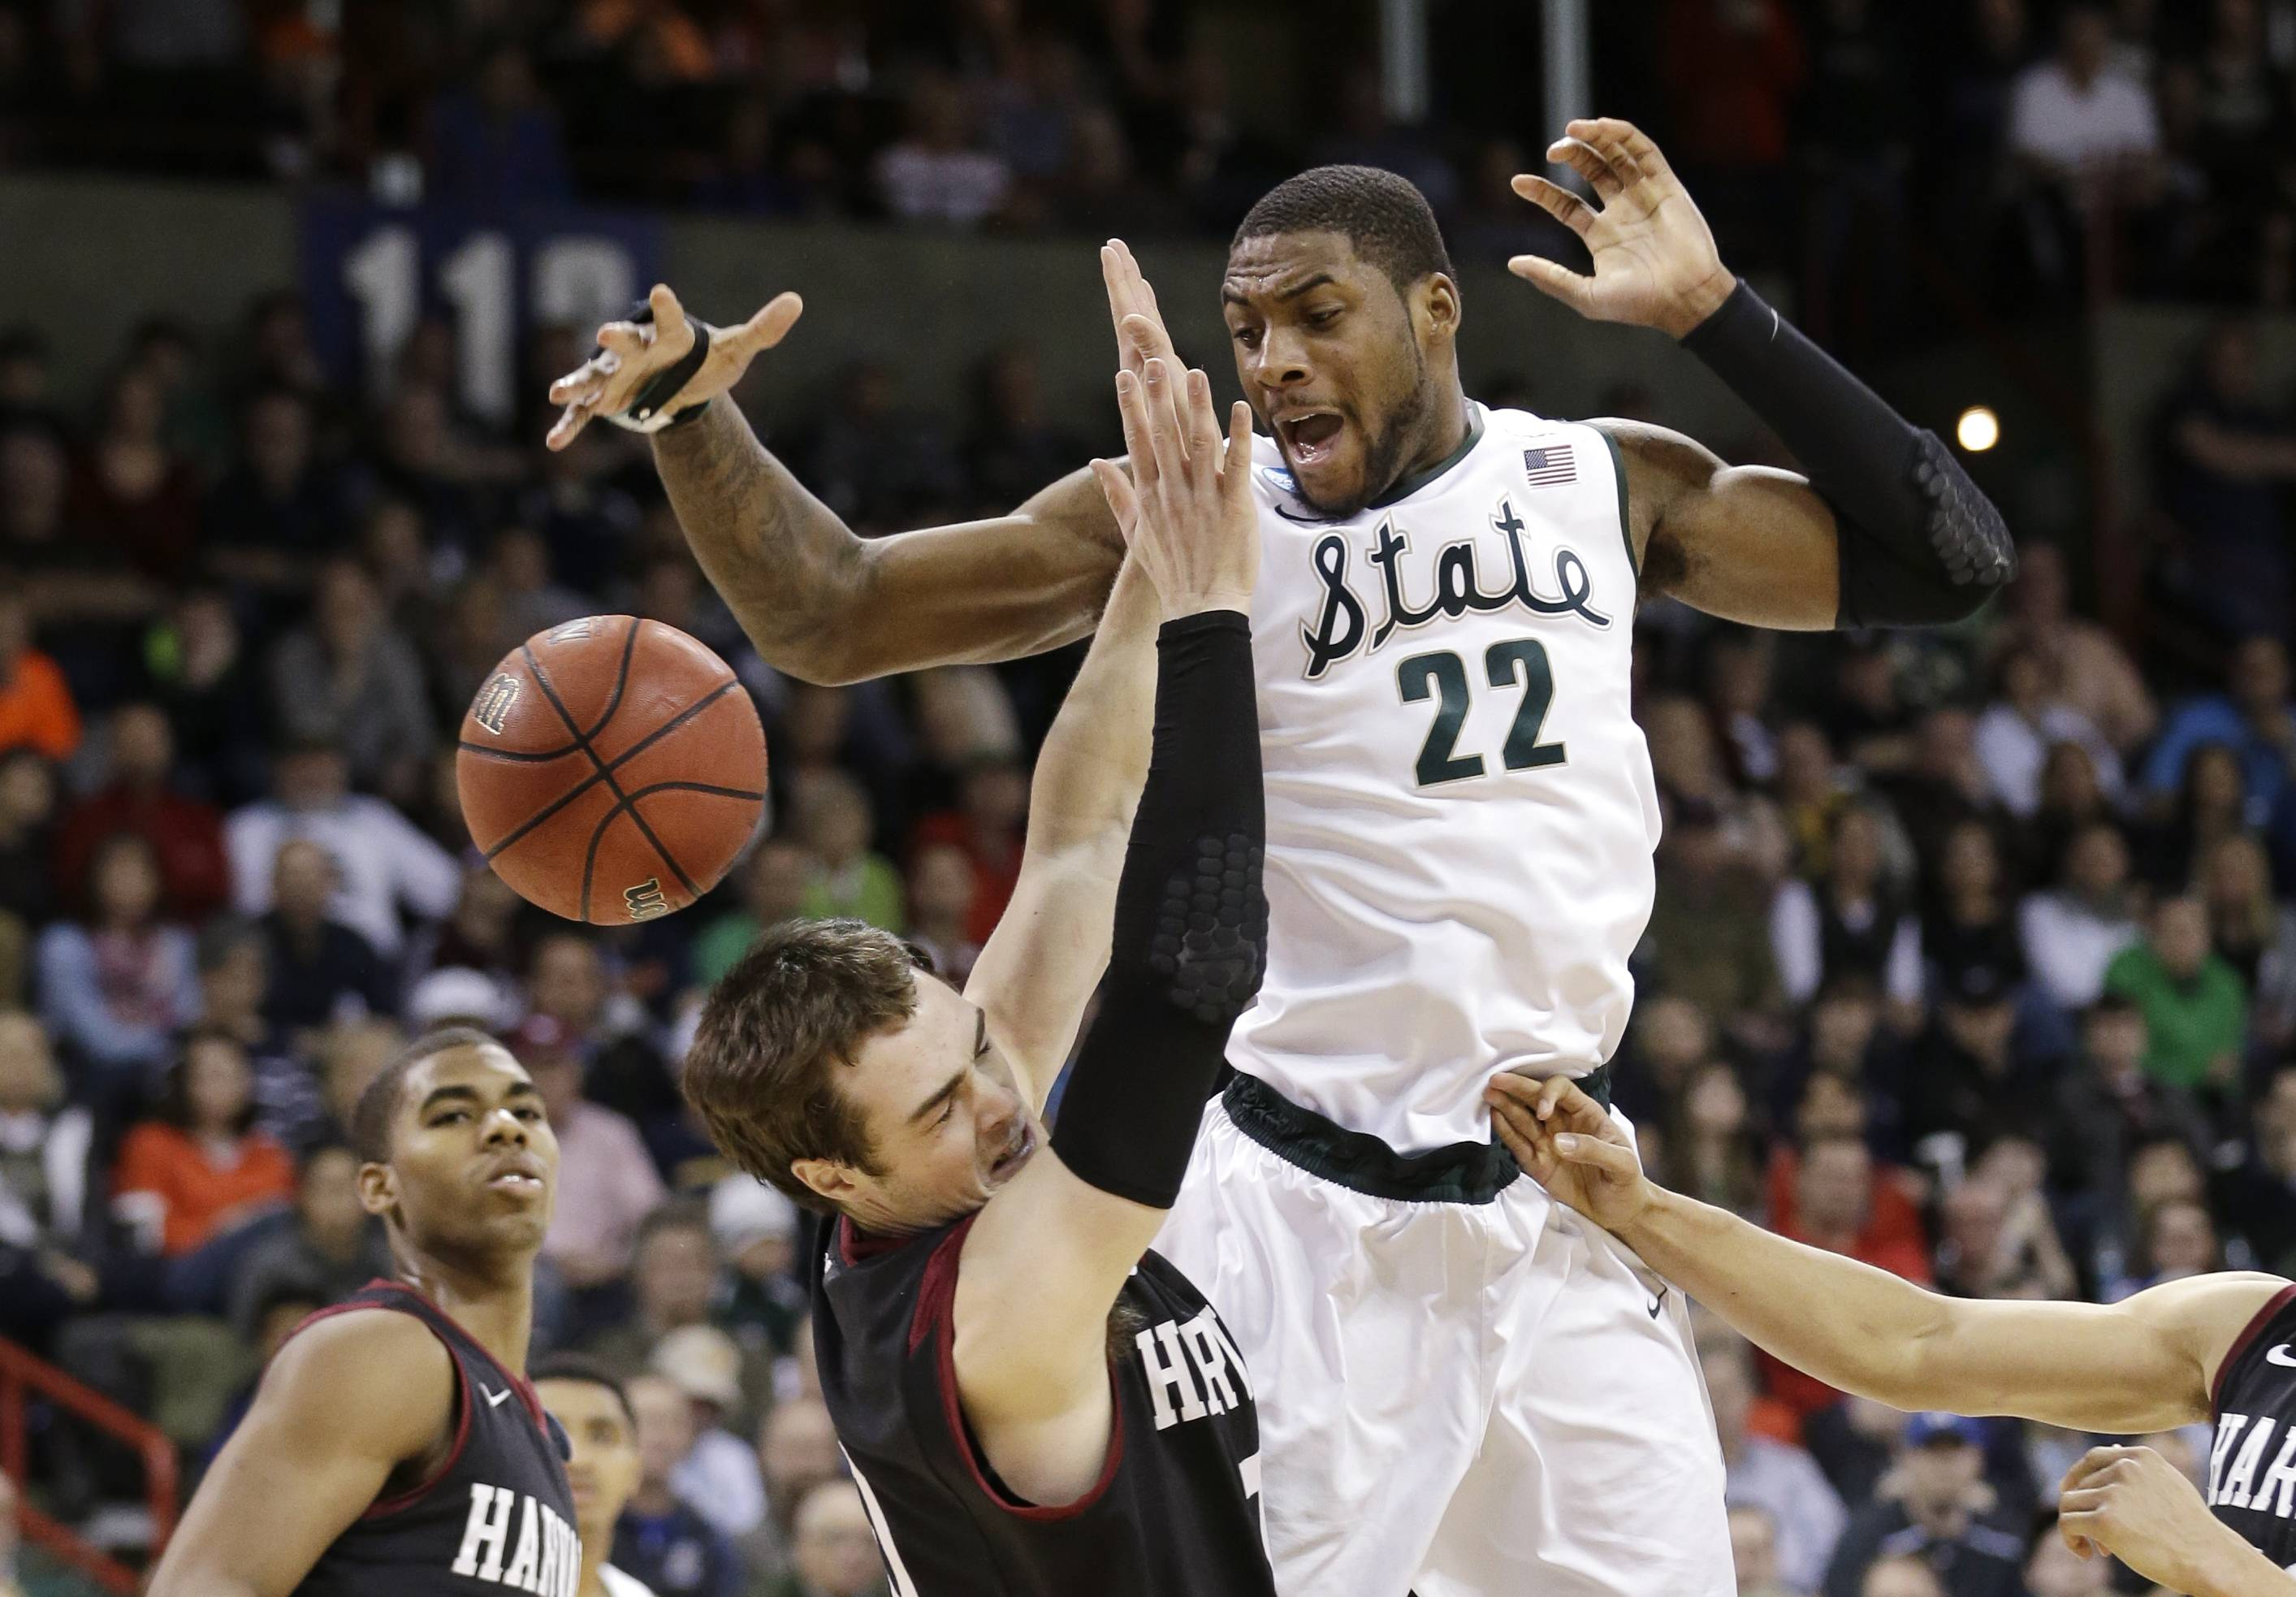 Michigan State's Branden Dawson (22) and Harvard's Laurent Rivard go for a loose ball during a third round game of the NCAA men's college basketball tournament Saturday in Spokane, Wash. Michigan State won 80-73, thanks in part to Dawson's career-high 26 points.